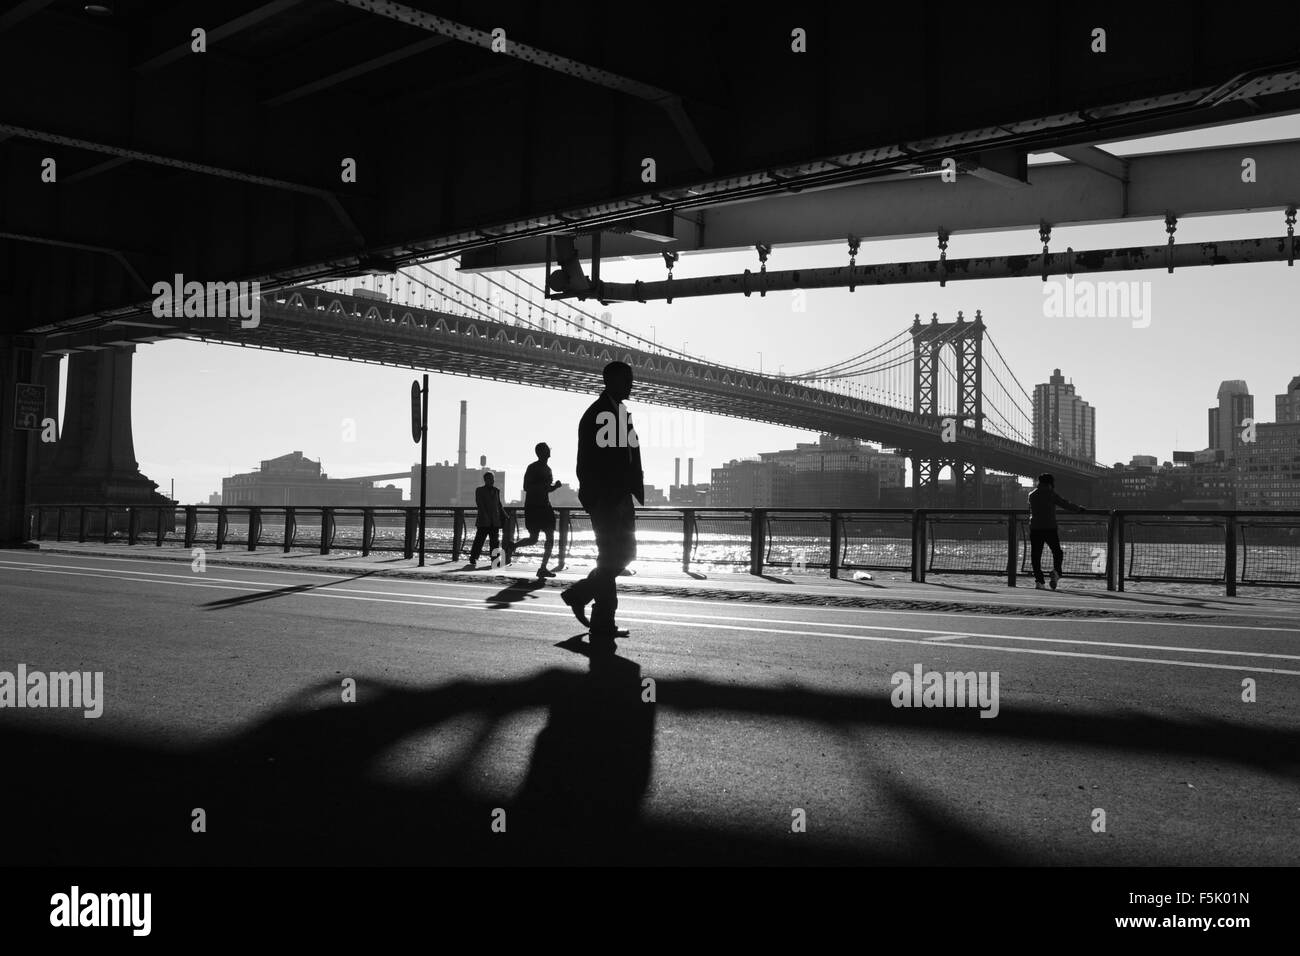 Two Chinatown women exercise, a man runs,  another man walks while watching the others along the East River Esplanade, - Stock Image